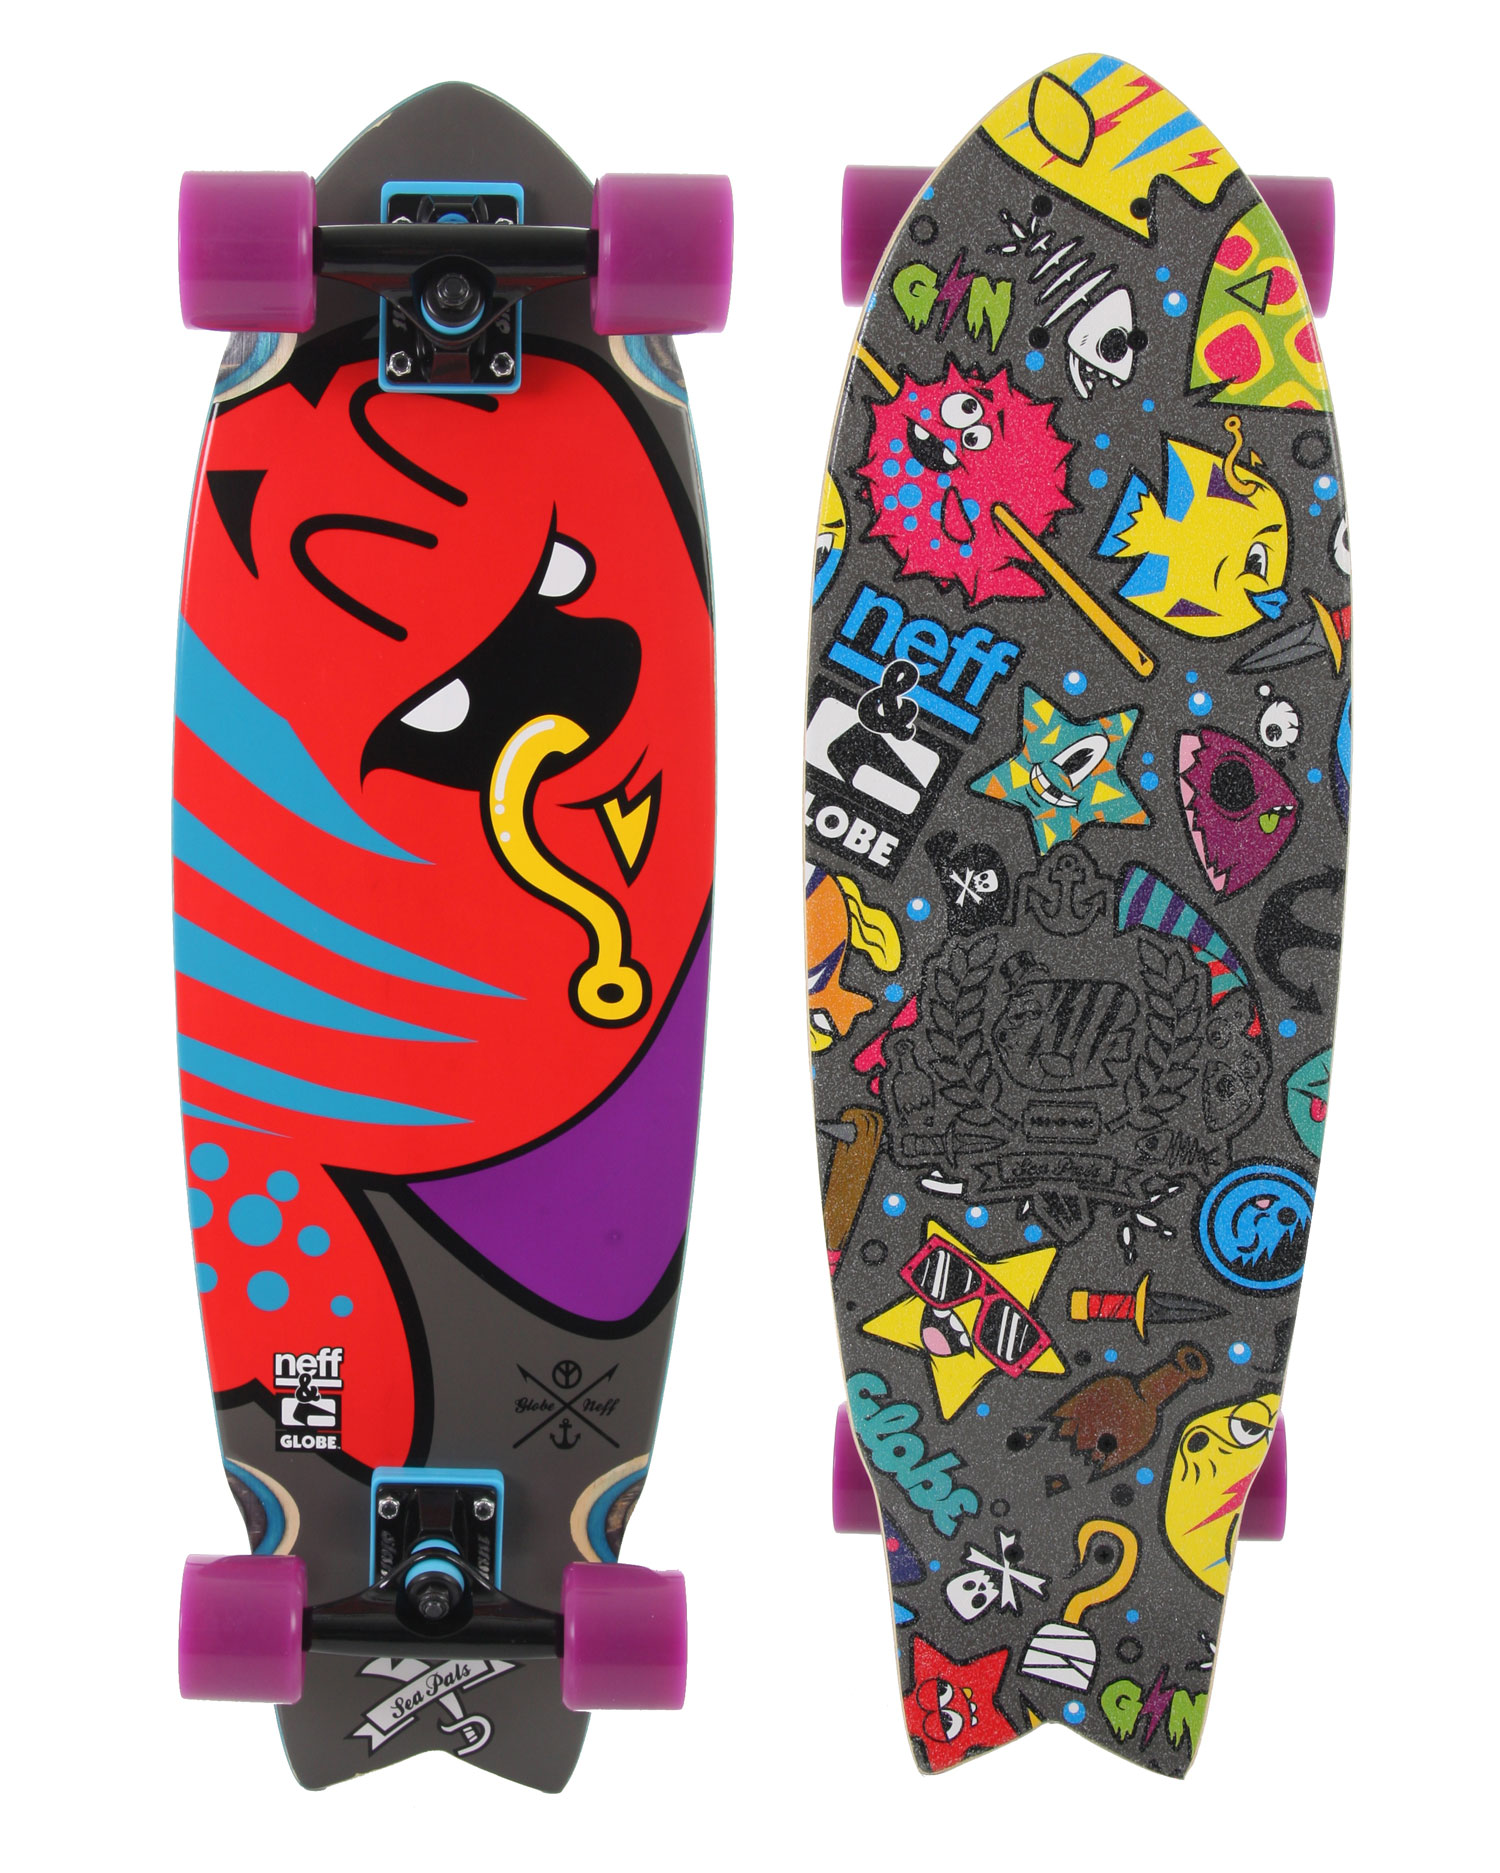 "Skateboard The Globe Neff Sea Pals Cruiser Skateboard is a fresh and funky skateboard for anyone looking for something that performs and looks great doing it. The board has got some really awesome all-over graphics that give it a personality all its own. The board is sturdily crafted from ply hard rock maple and resin epoxy glue and comes with conical wheels and Abec 7 precision speed bearings. The Globe Neff Sea Pals Cruiser Skate Board is the product of great innovation and creativity by companies Globe and Neff.Key Features of the Globe Neff Sea Pals Cruiser Skateboard: Collaboration with Neff 7 Ply Hard Rock Maple With Resin Epoxy Glue 5.375"" Slant Trucks 62mm 83A Conical WheelsAbec 7 Precision Speed Bearings and High Tensile Hardware - $119.95"